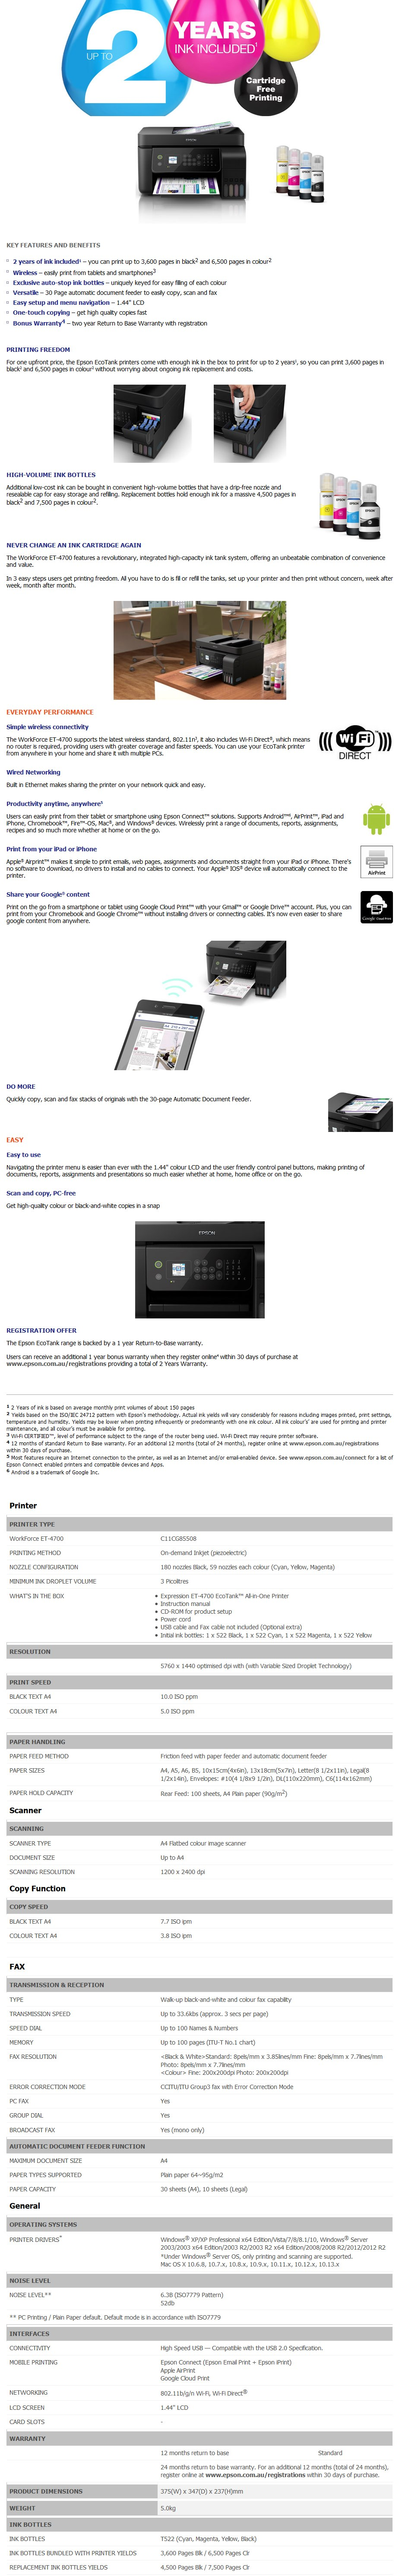 A large marketing image providing additional information about the product Epson WorkForce ET-4700 EcoTank Multifunction Printer - Additional alt info not provided